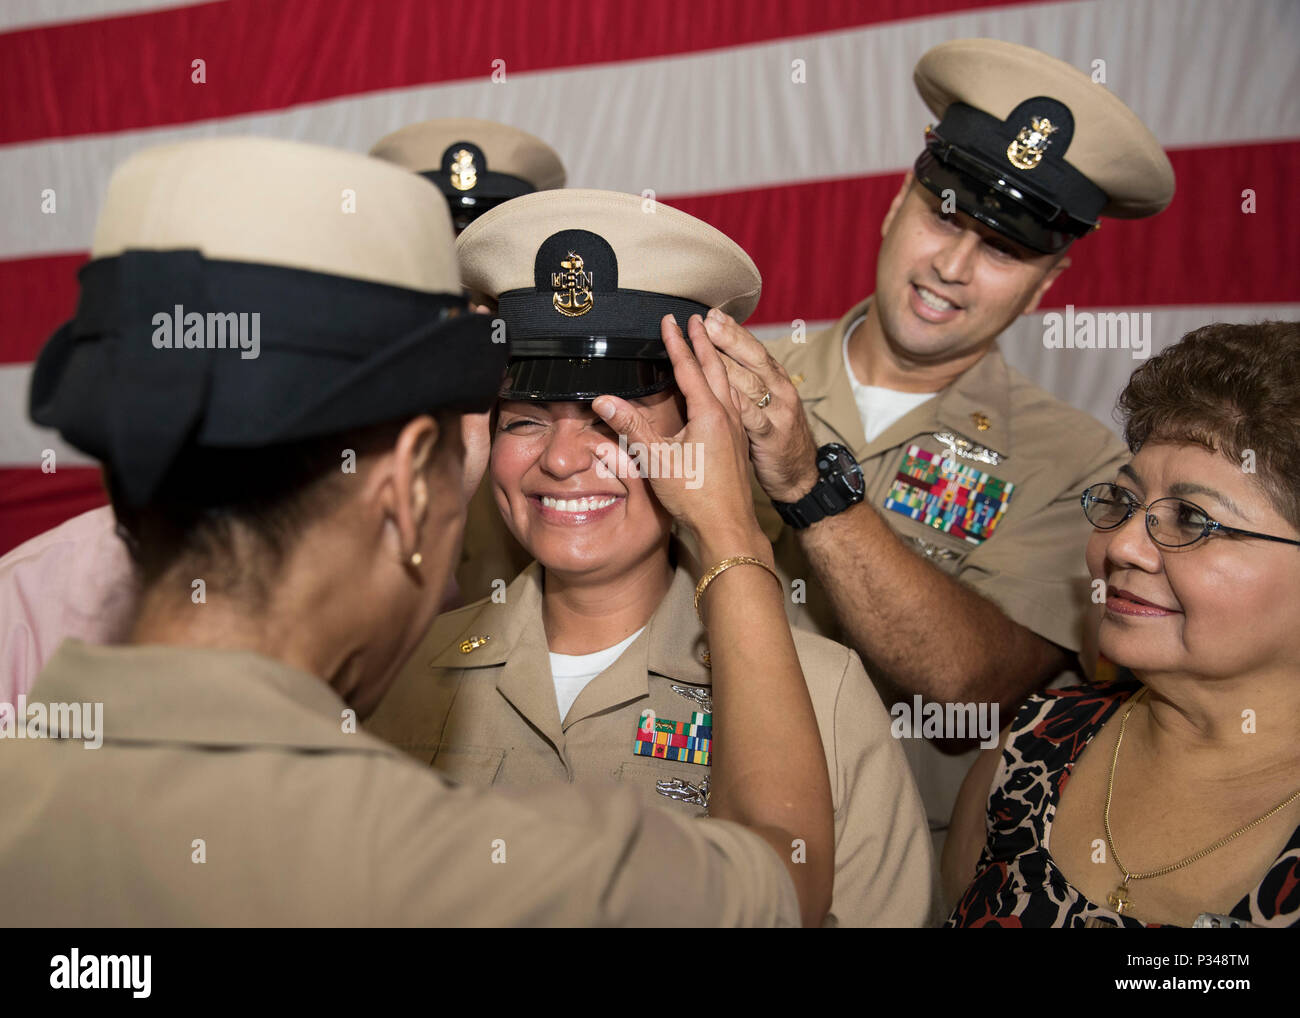 NORFOLK, Va. (June 12, 2018) -- Senior Chief Ship's Serviceman Angela Zamora, from Jersey City, New Jersey, assigned to USS Gerald R. Ford's (CVN 78) supply department, is covered by Master Chief Logistics Specialist German Padilla and Master Chief Ship Serviceman Monique Chatman during a senior chief petty officer pinning ceremony in the ship's hangar bay. Ford had 14 chief petty officers selected to the rank of senior chief petty officer. (U.S. Navy photo by Mass Communication Specialist 3rd Class Ryan Carter) - Stock Image